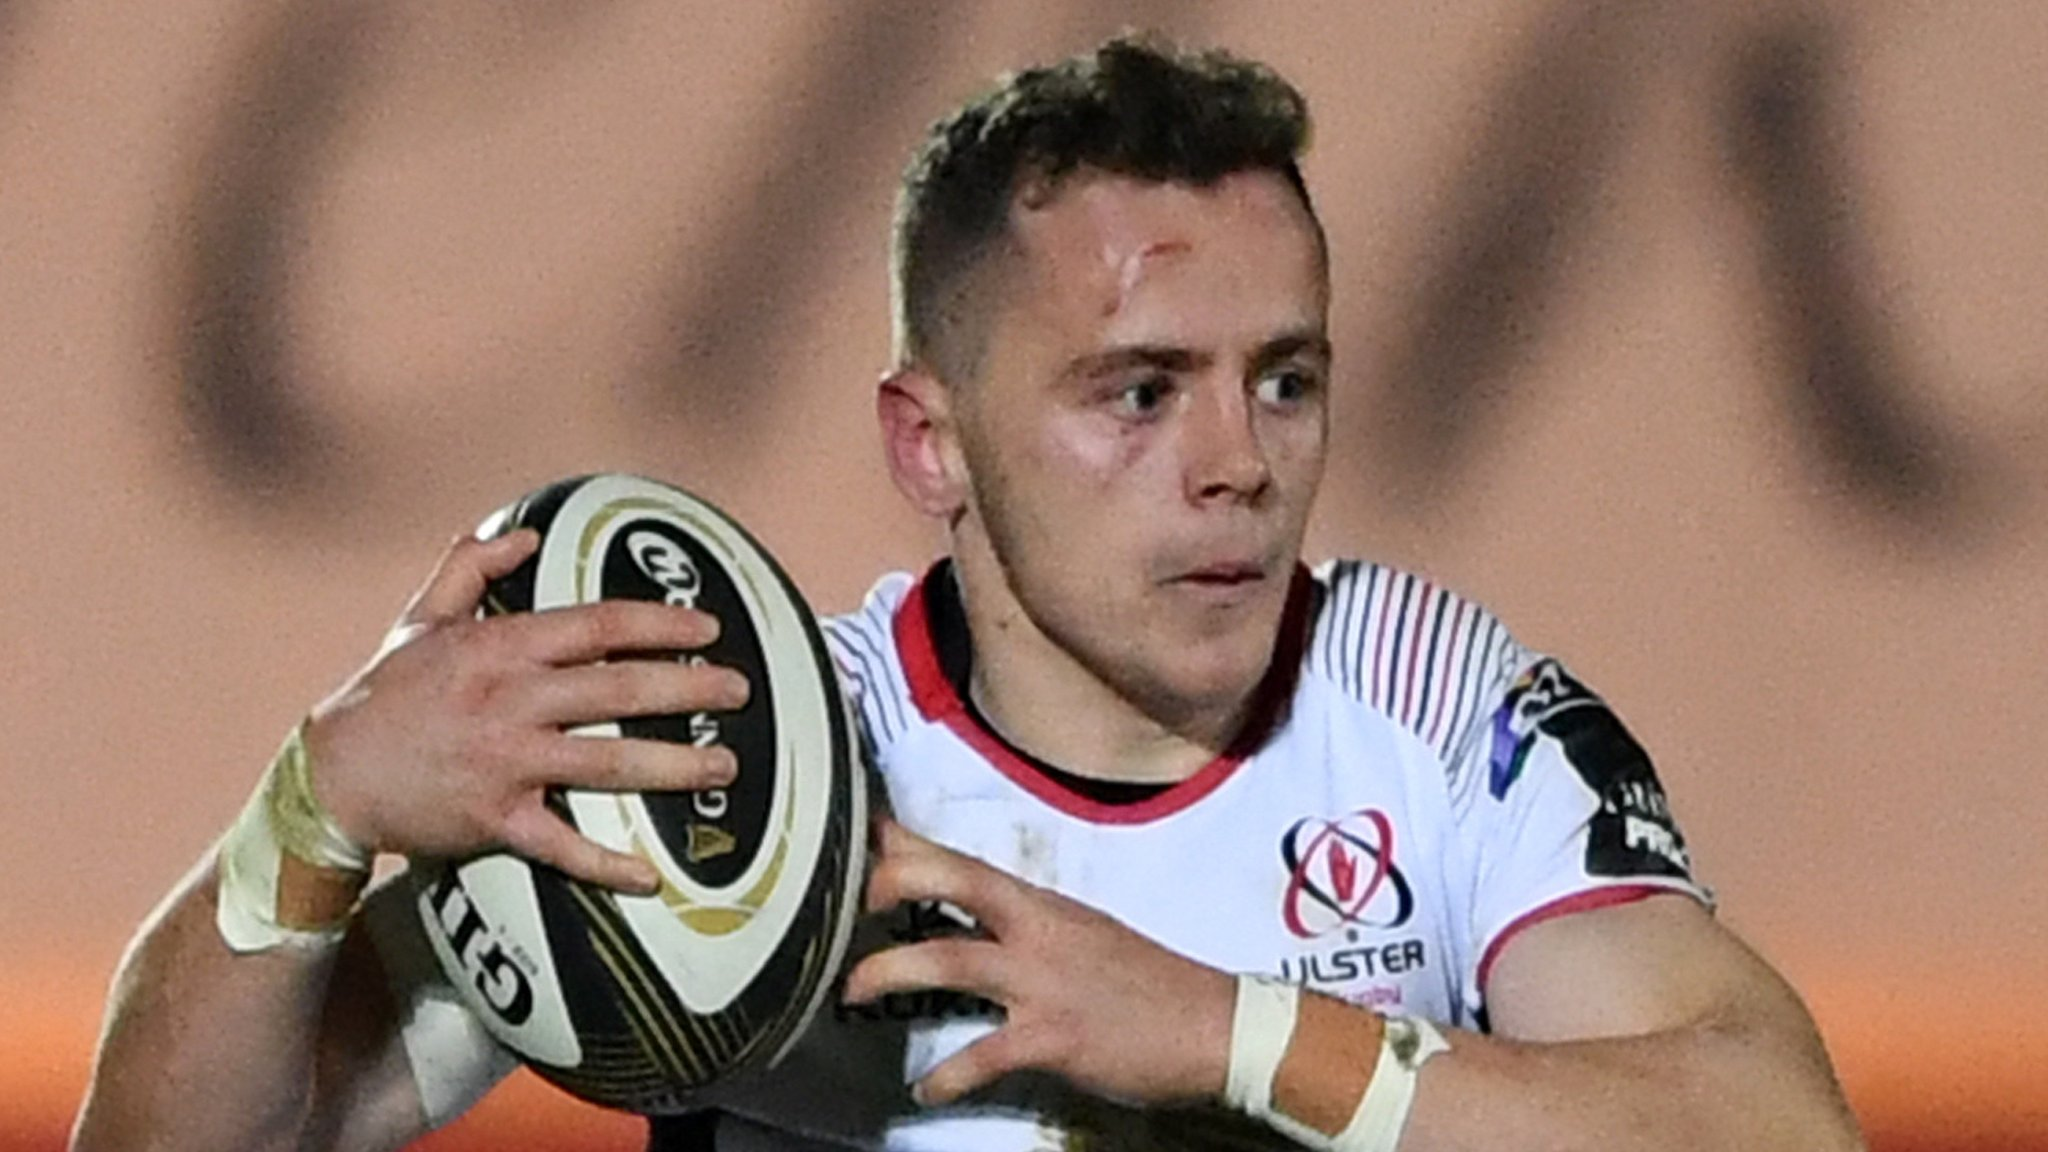 Ulster Rugby: Province's young players embracing first team opportunities says Michael Lowry